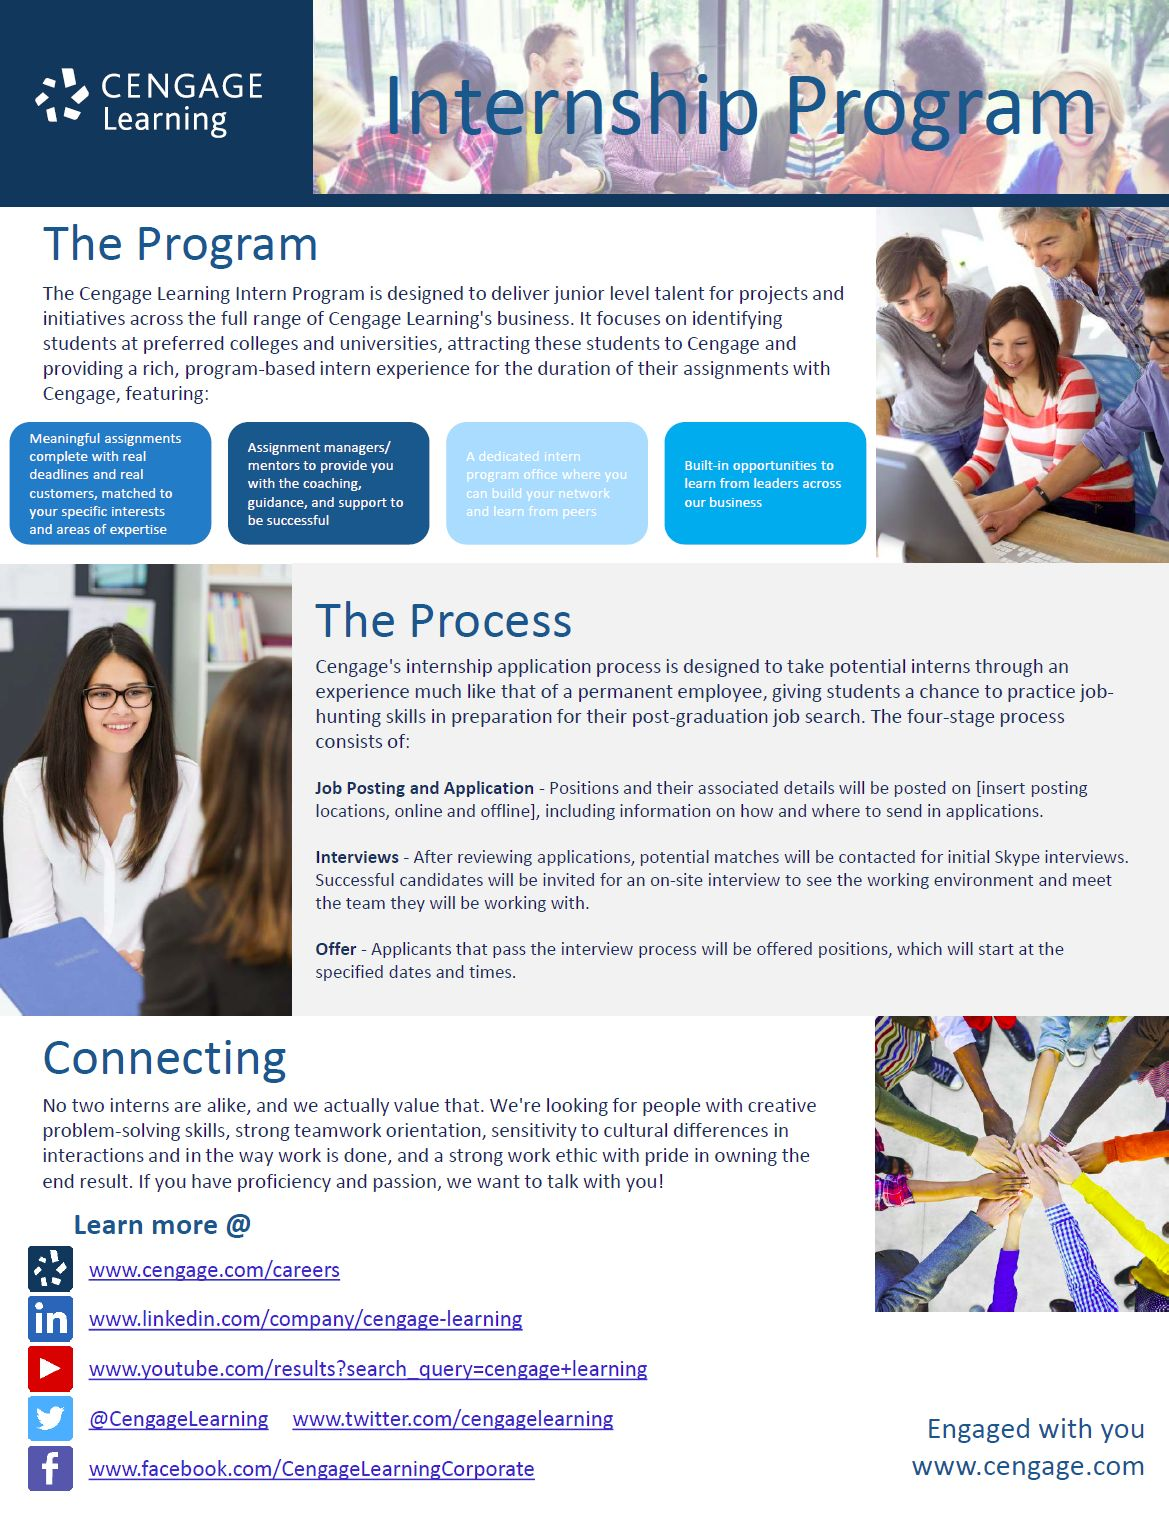 Internship Program Overview